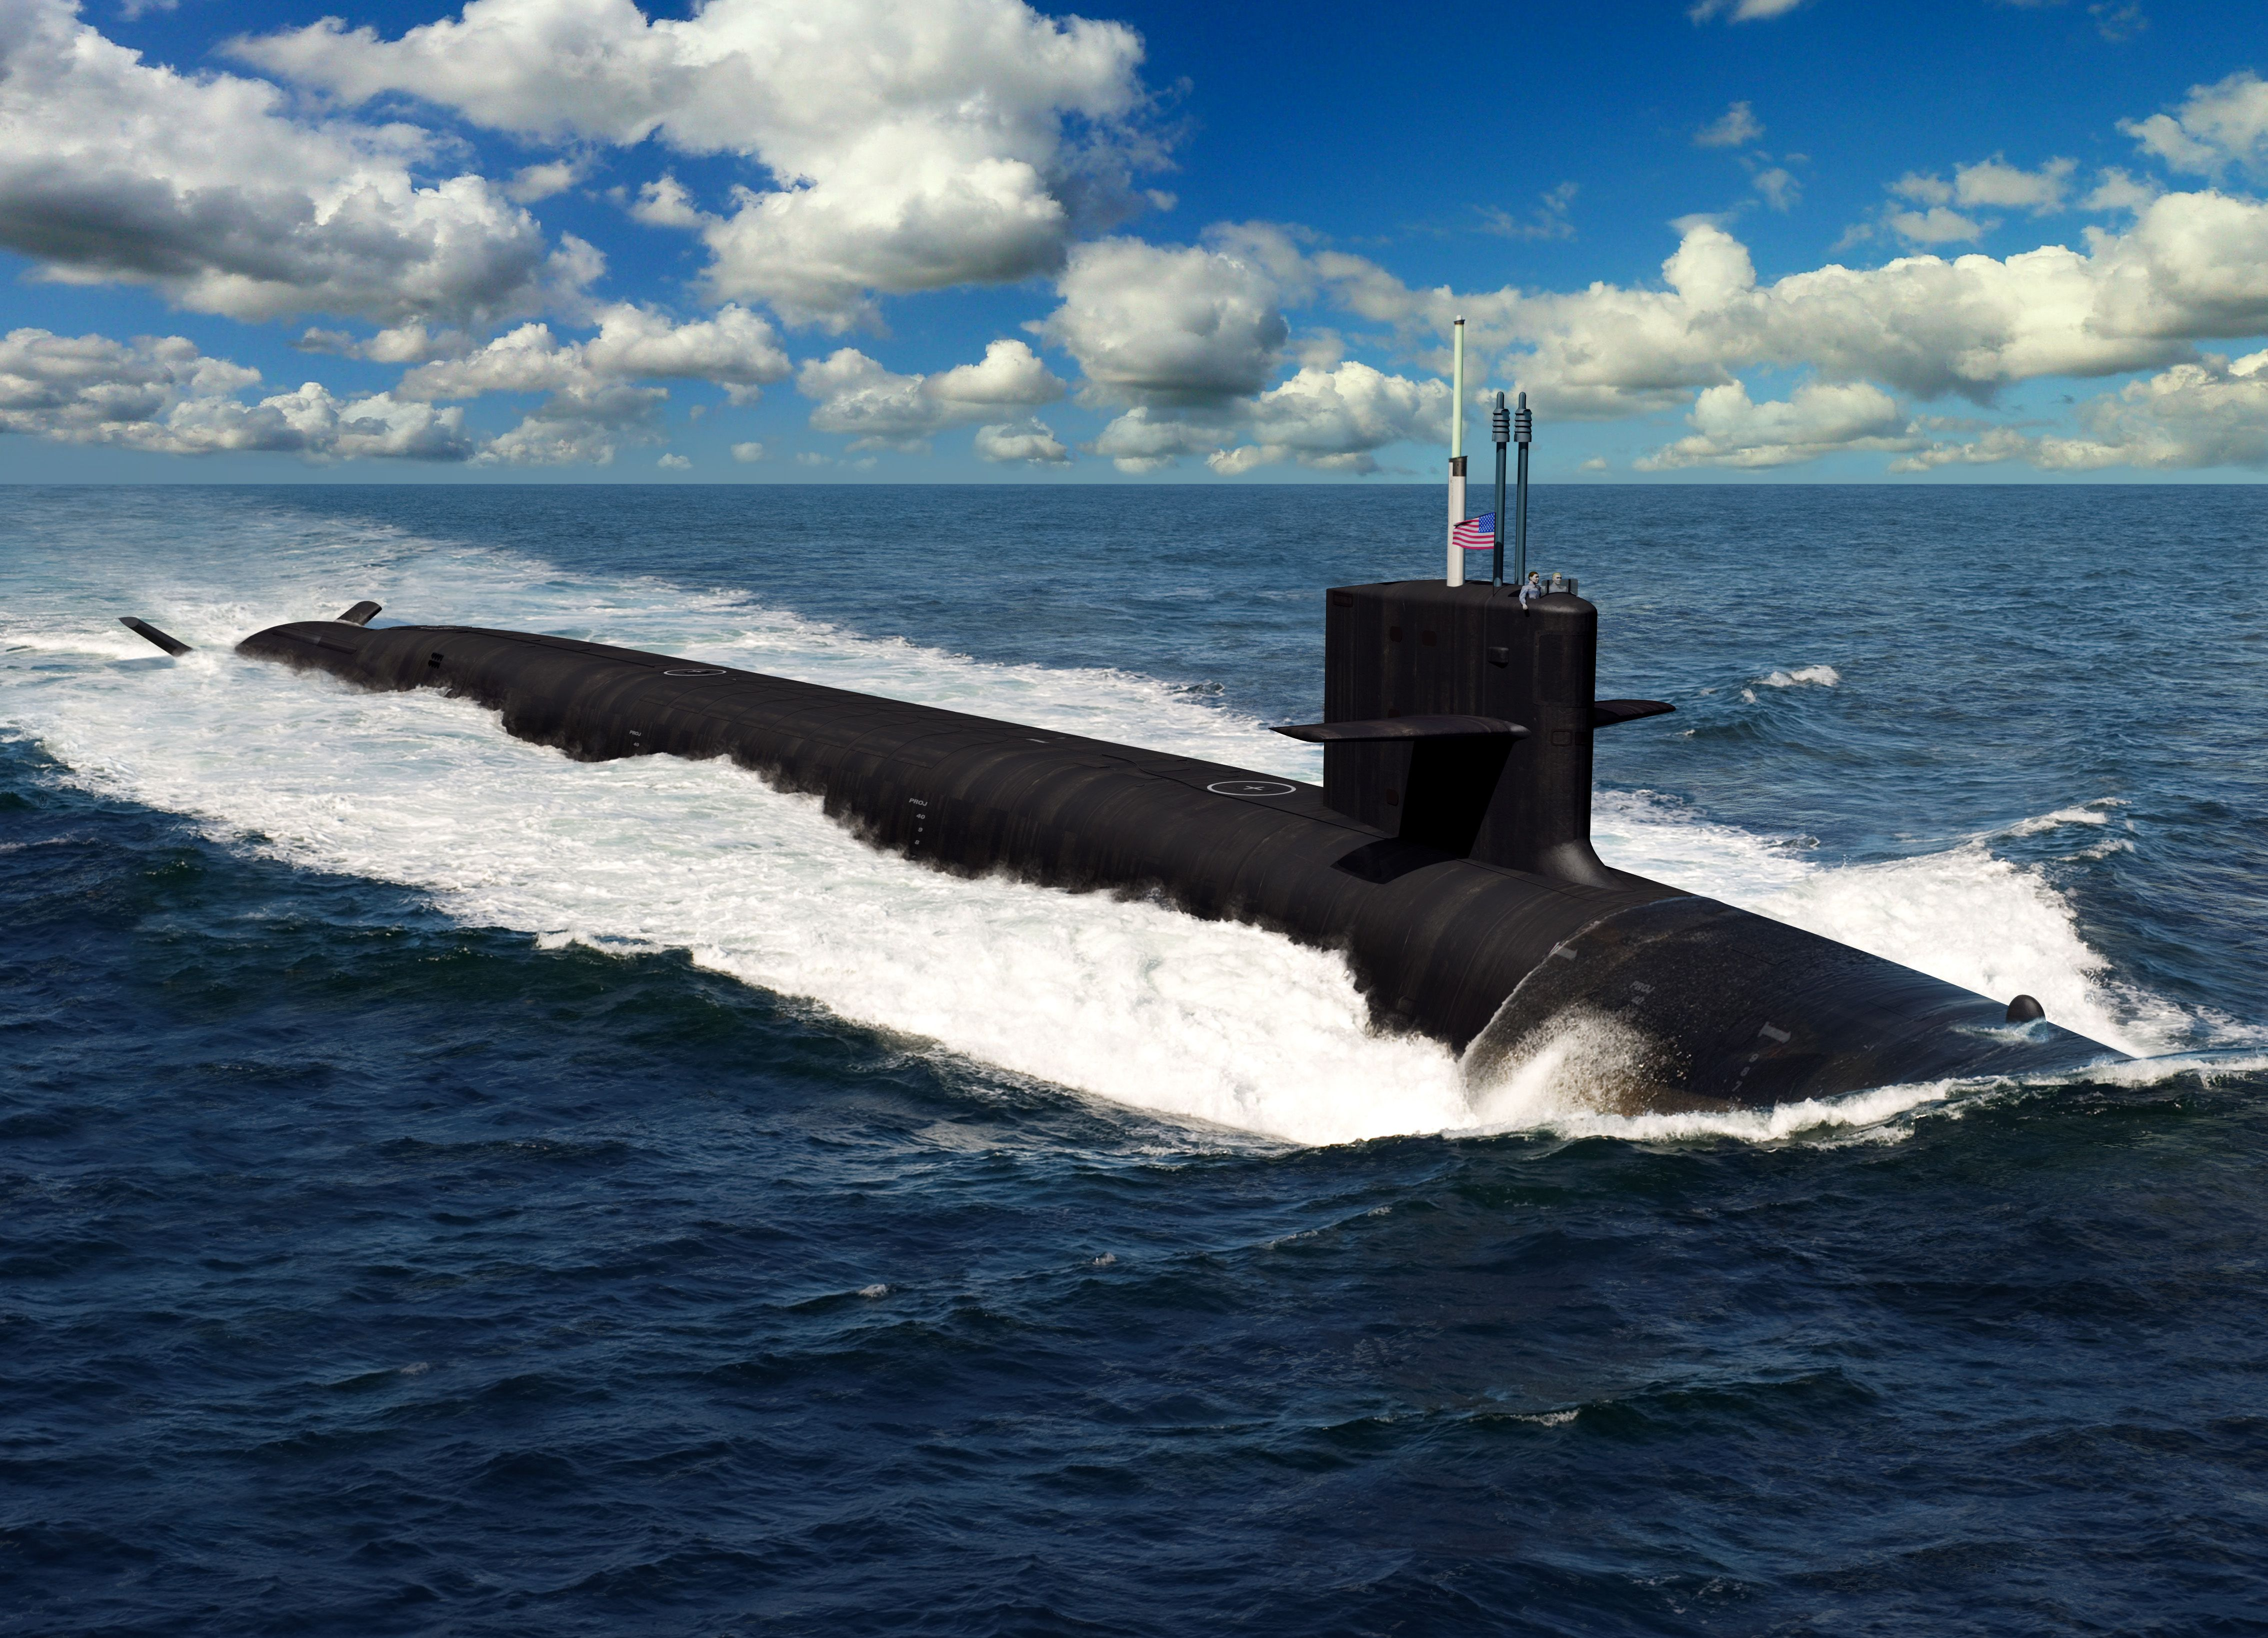 The U.S. Officially Begins Building Its New Missile Submarine